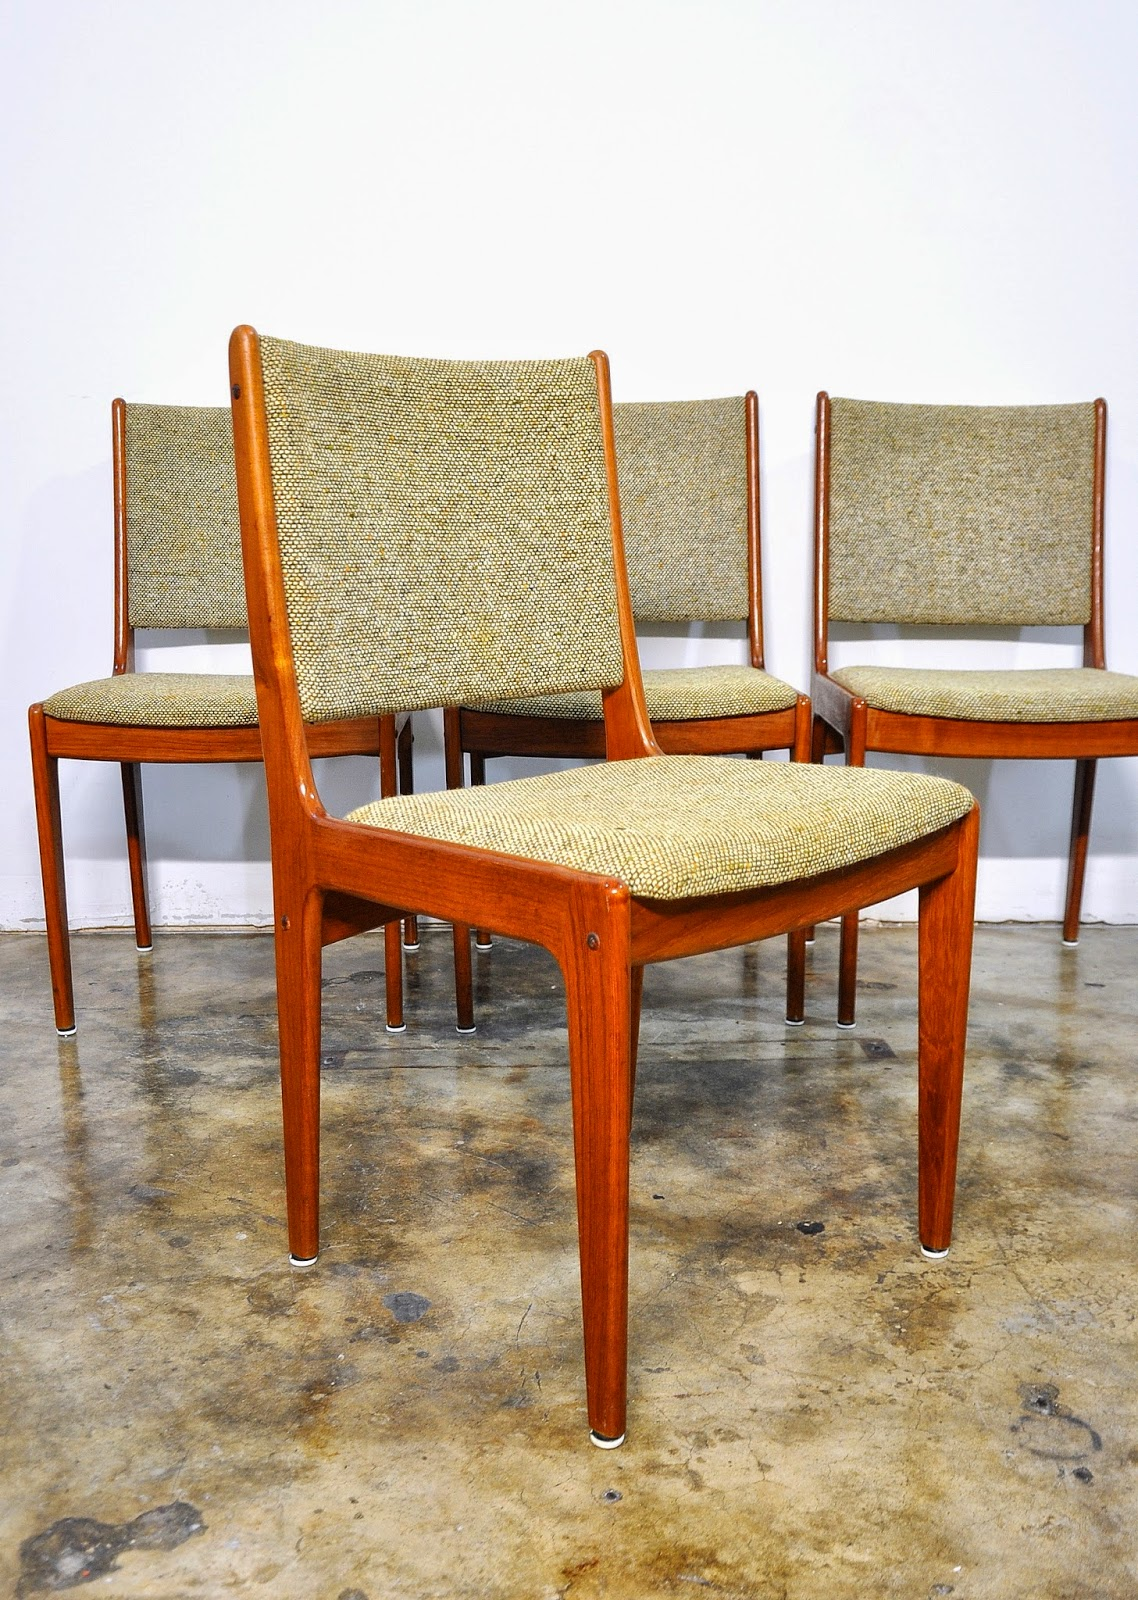 SELECT MODERN Set of 4 Danish Modern Teak Dining Chairs : ScandinavianTeakDiningChairs9 from midcenturymoderndesignfinds.blogspot.com size 1138 x 1600 jpeg 537kB